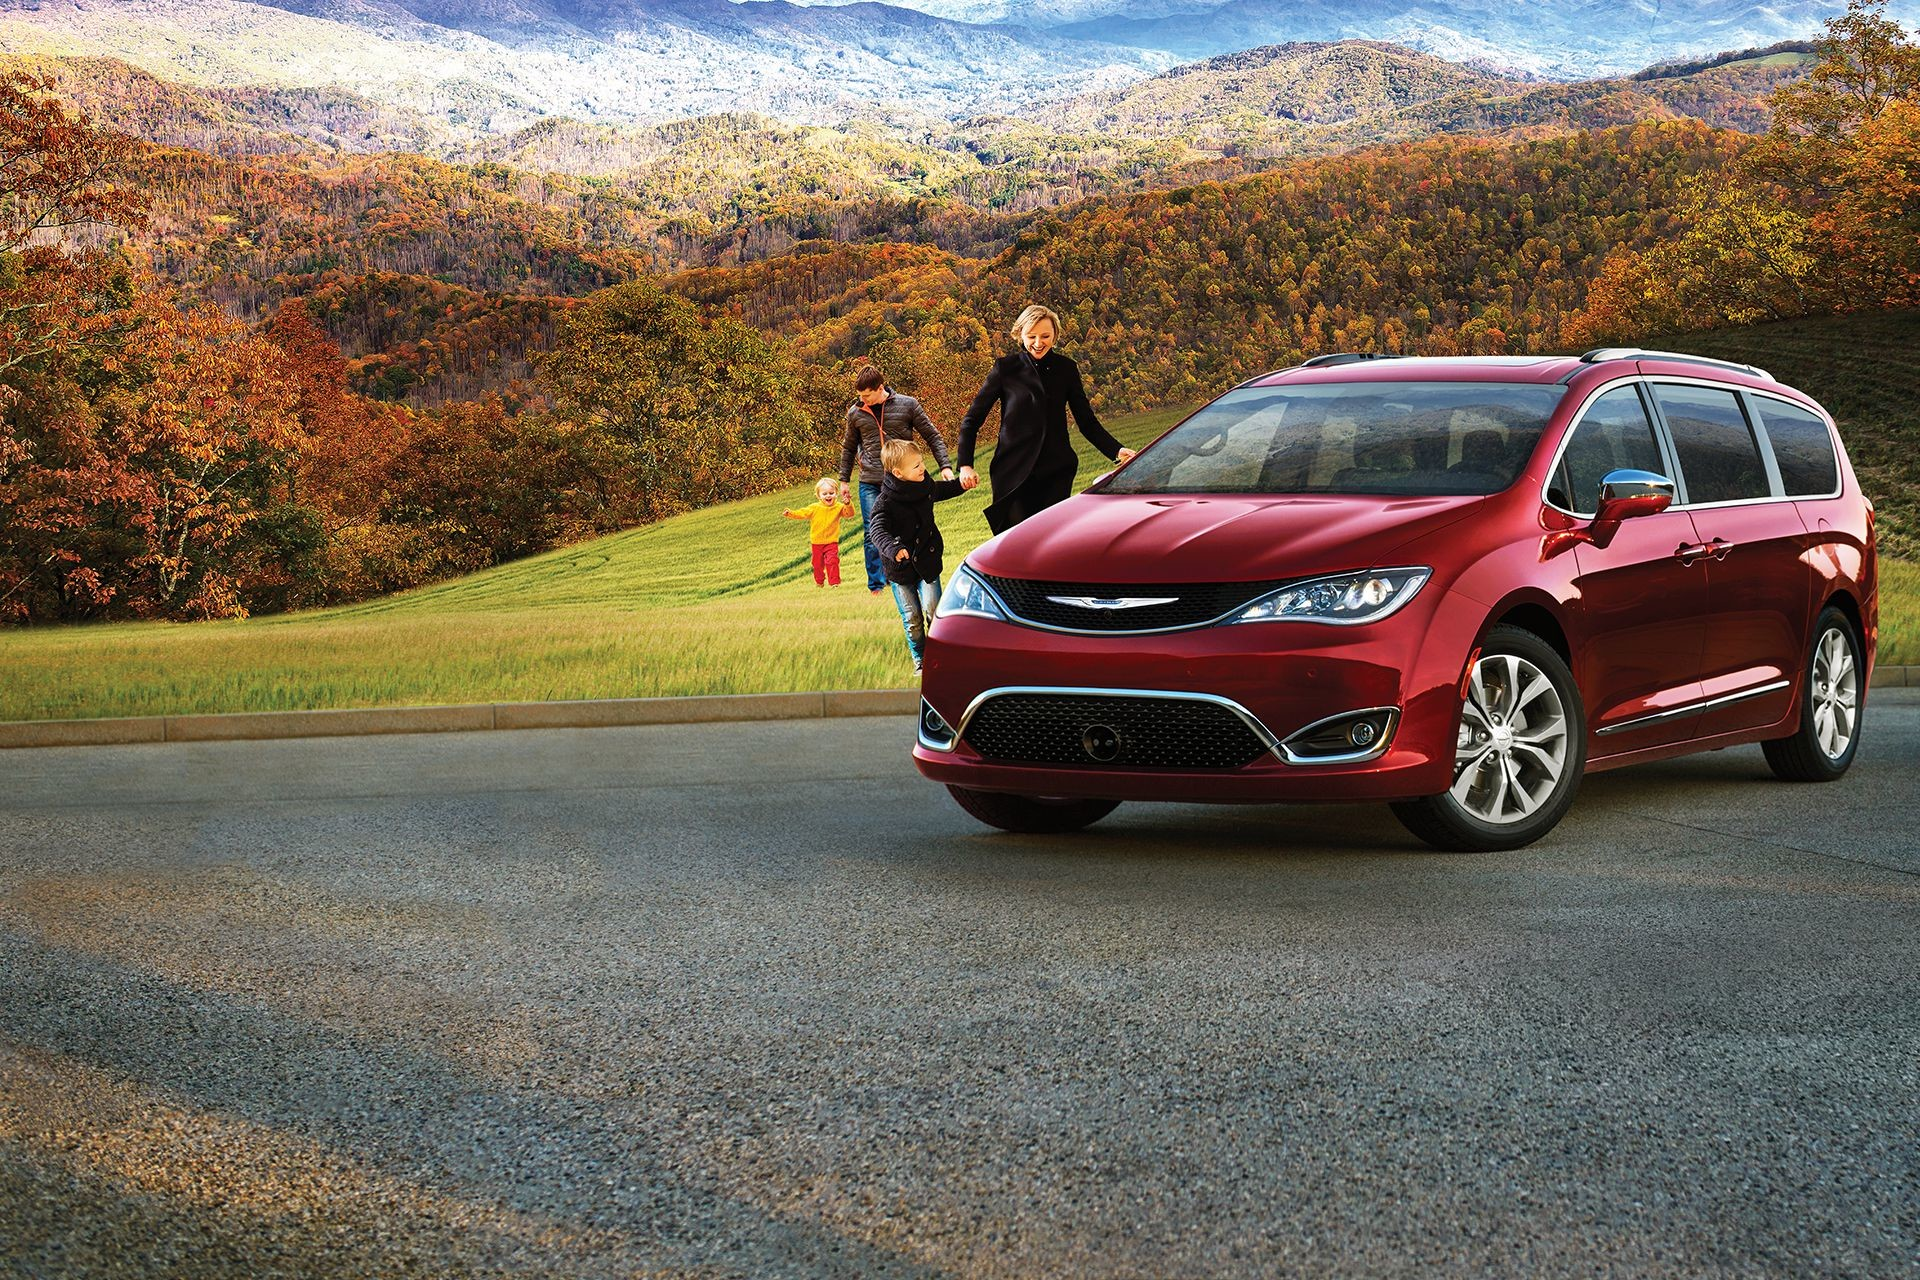 2018 Chrysler Pacifica Exterior Mountain Lifestyle